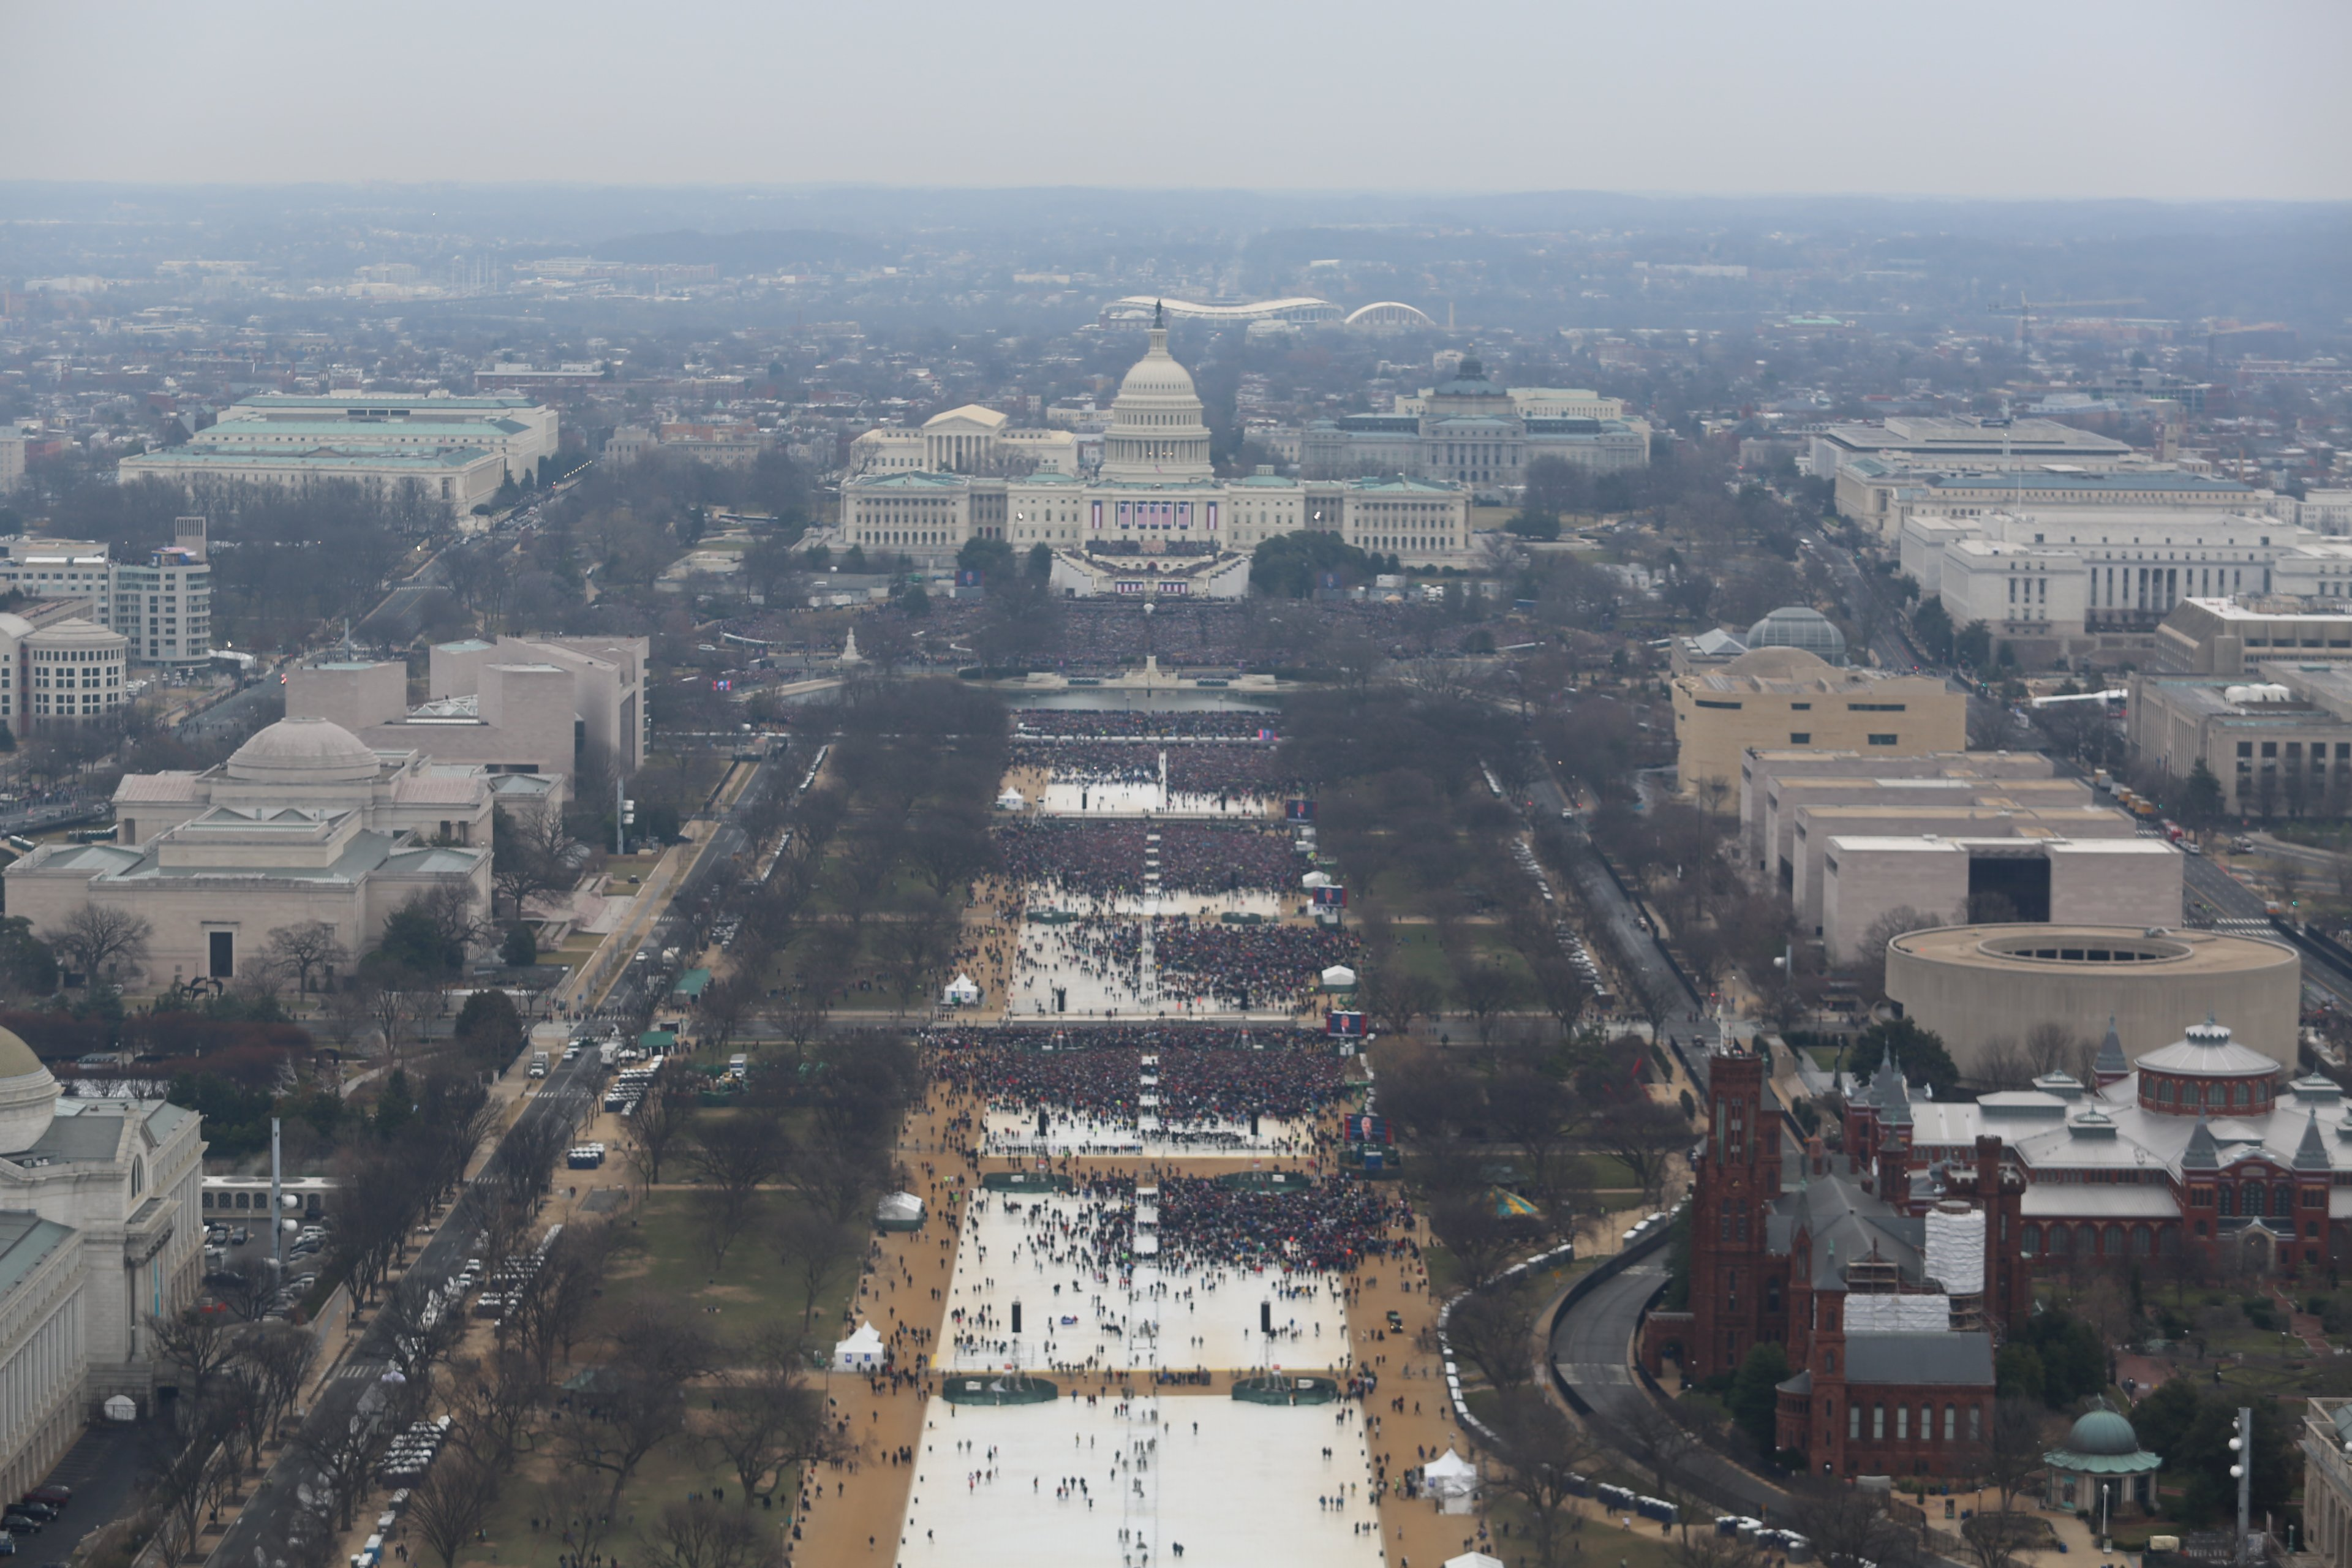 New inauguration crowd photos released (2017) - CNN Video